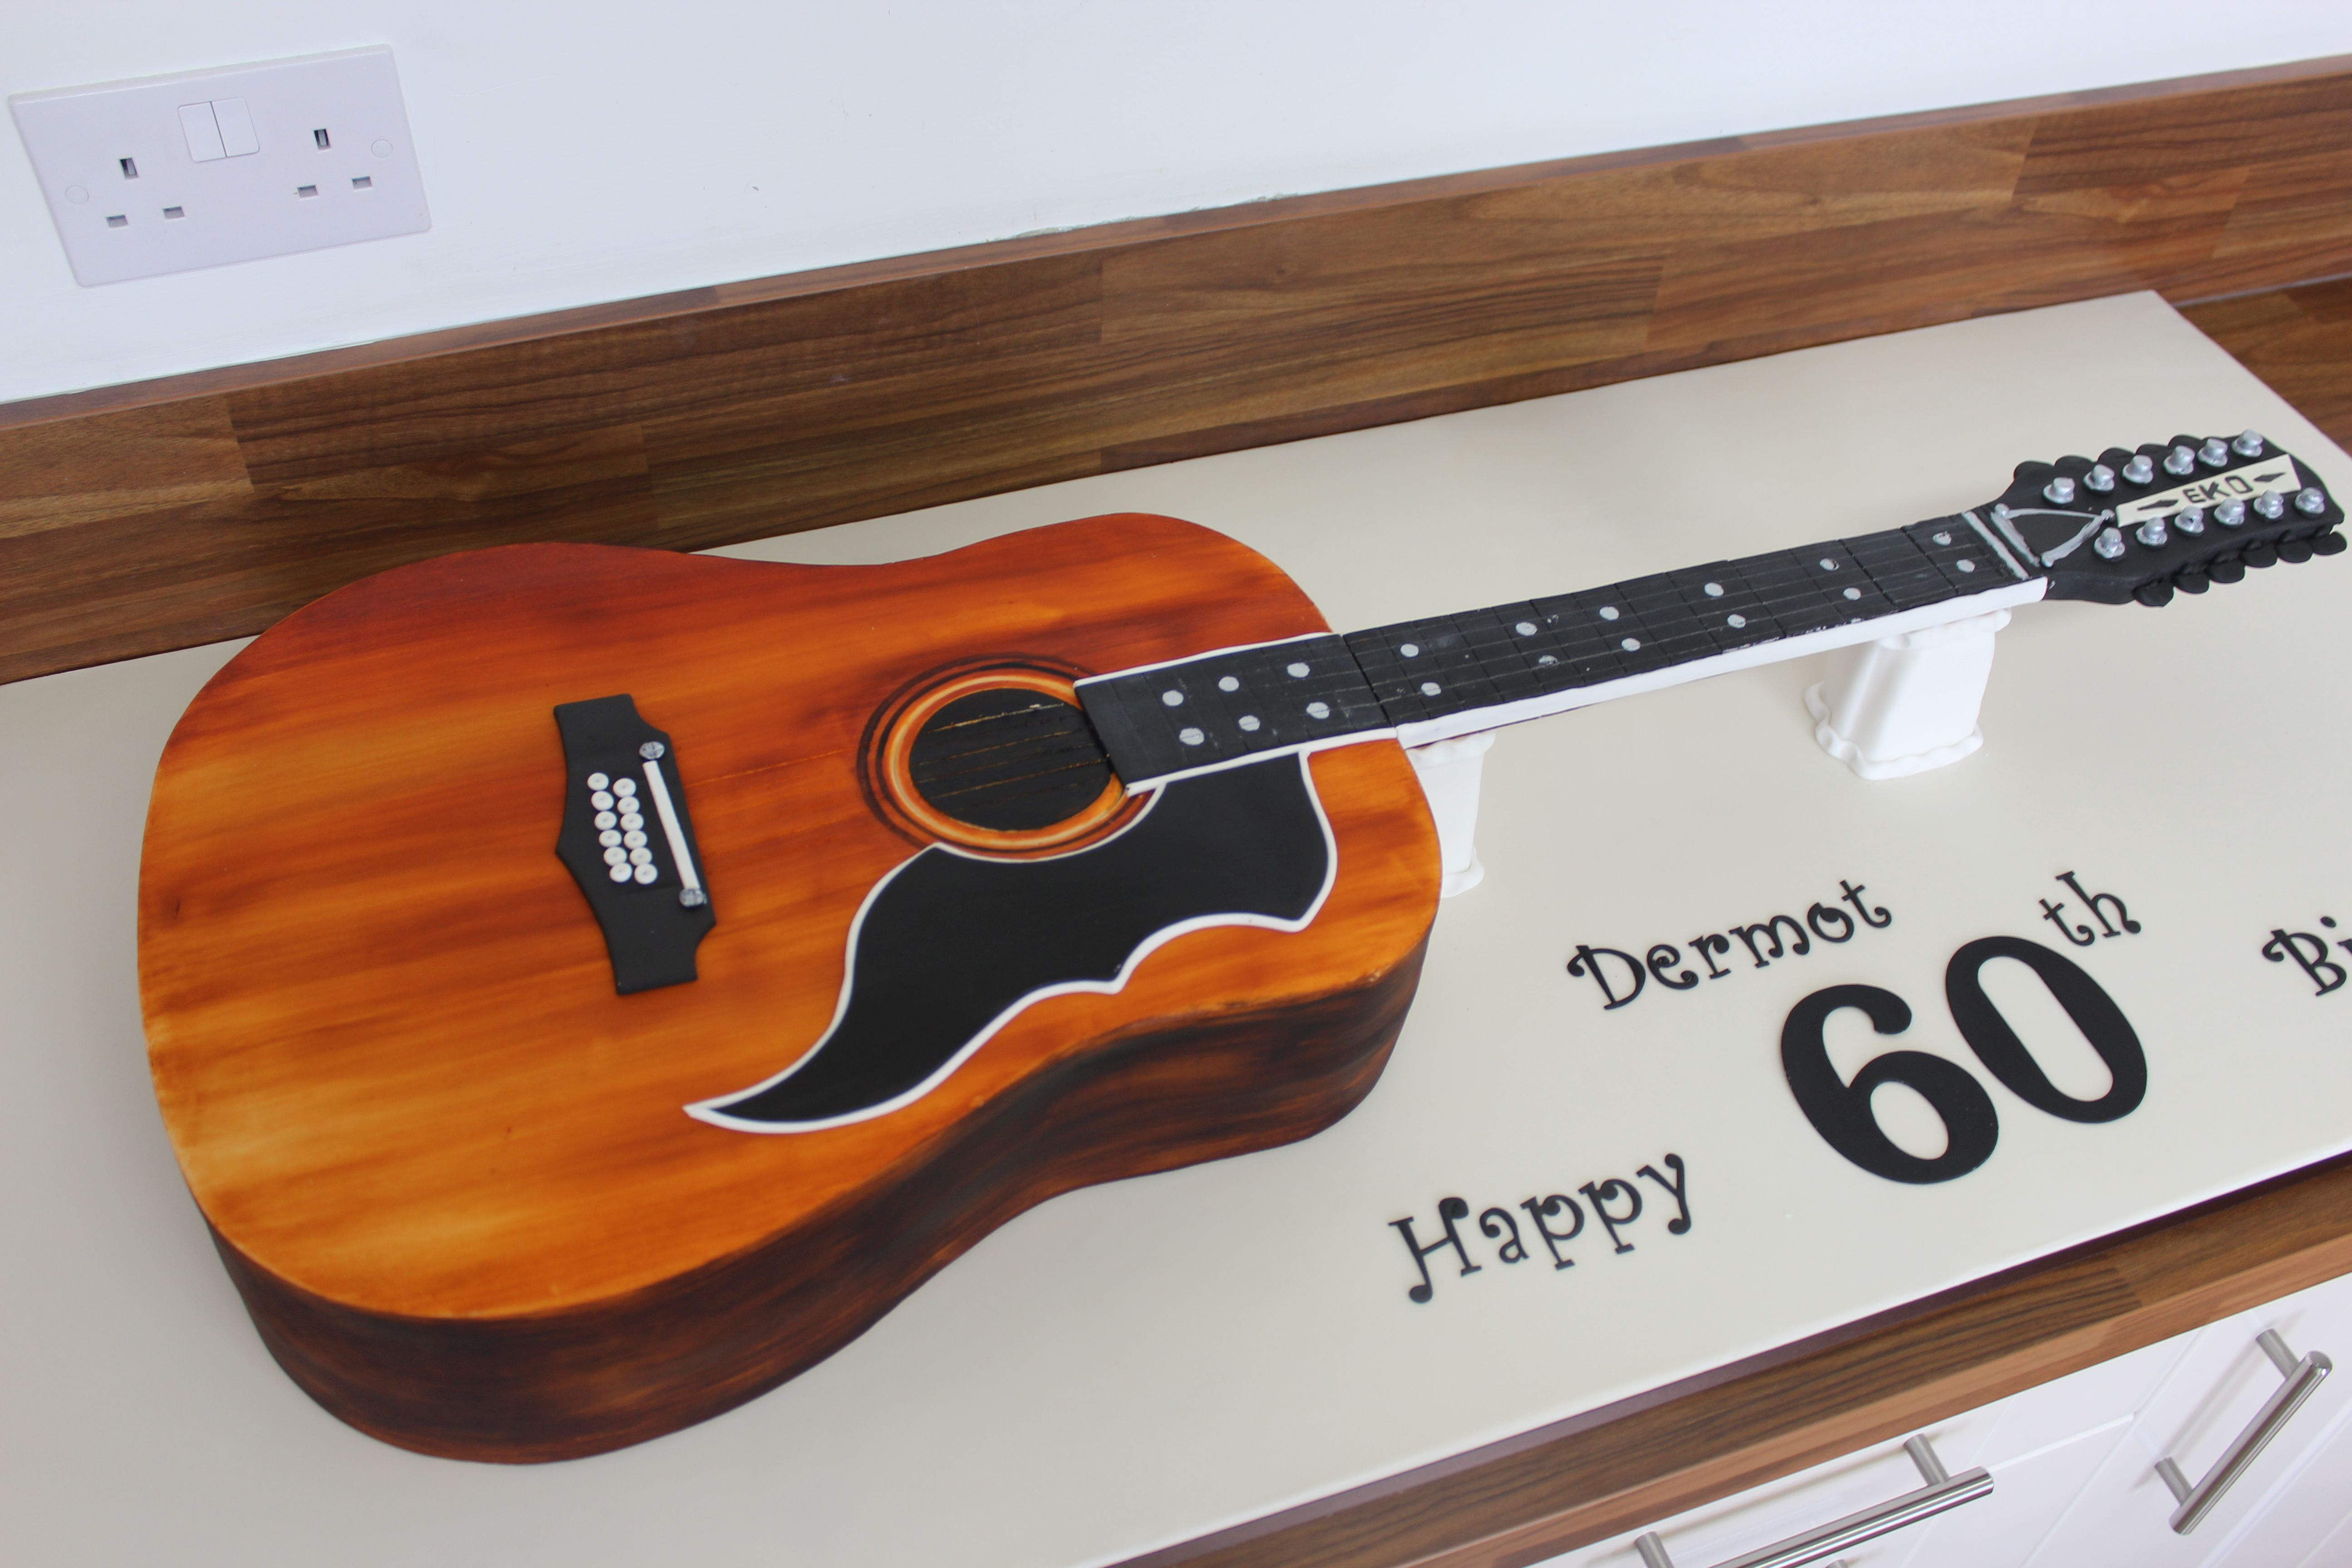 Templates On Pinterest Guitar Cake Cakes On Wiring Guitars For